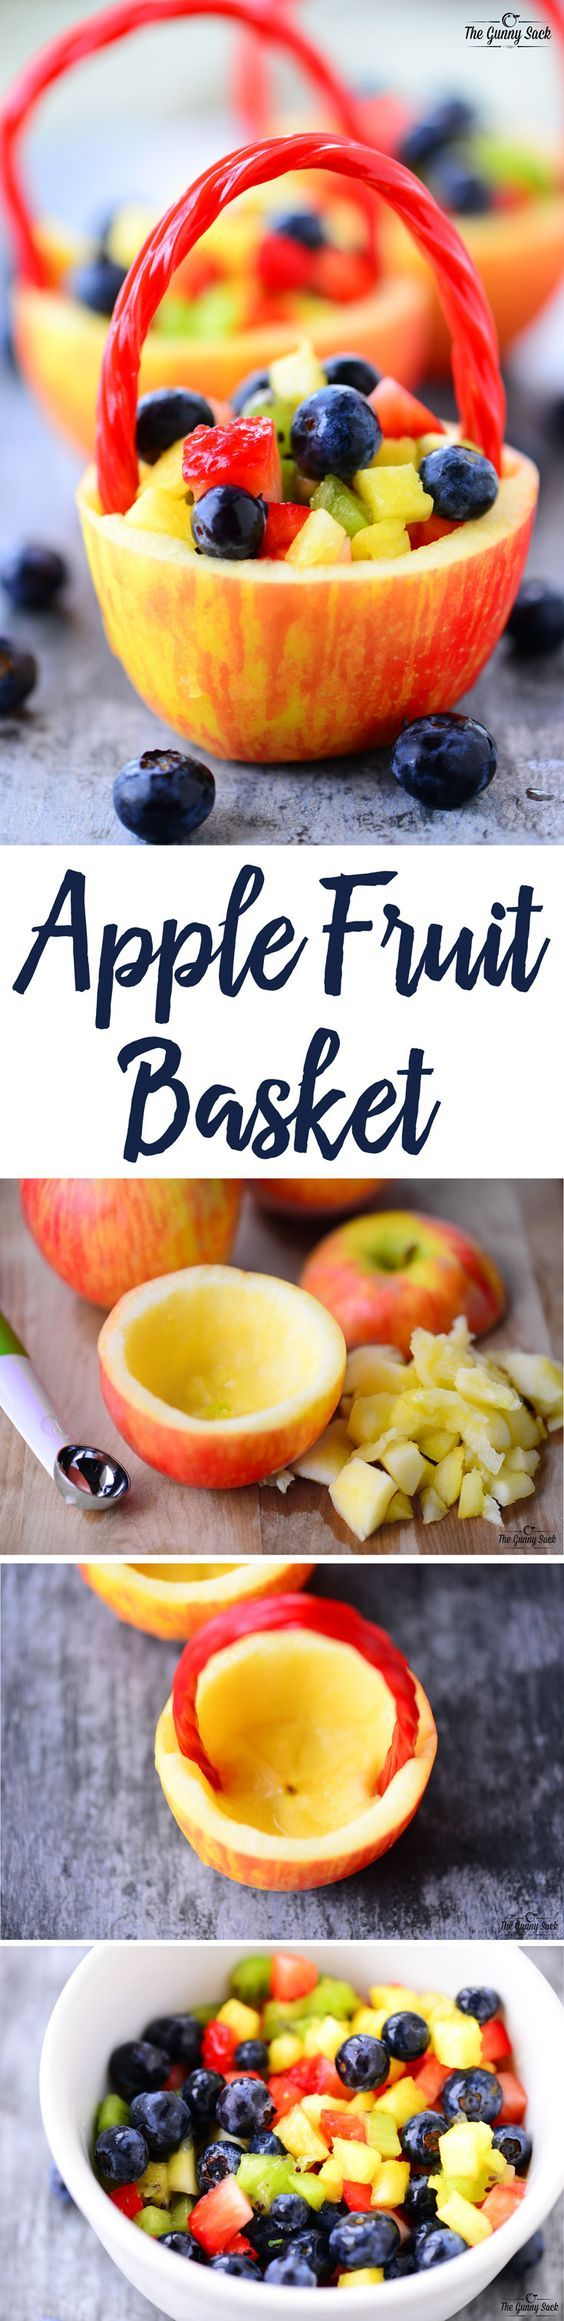 Apple Fruit Baskets have a hollowed out apple as a basket, a licorice handle and fresh, colorful fruit inside. This healthy Easter basket is irresistible!